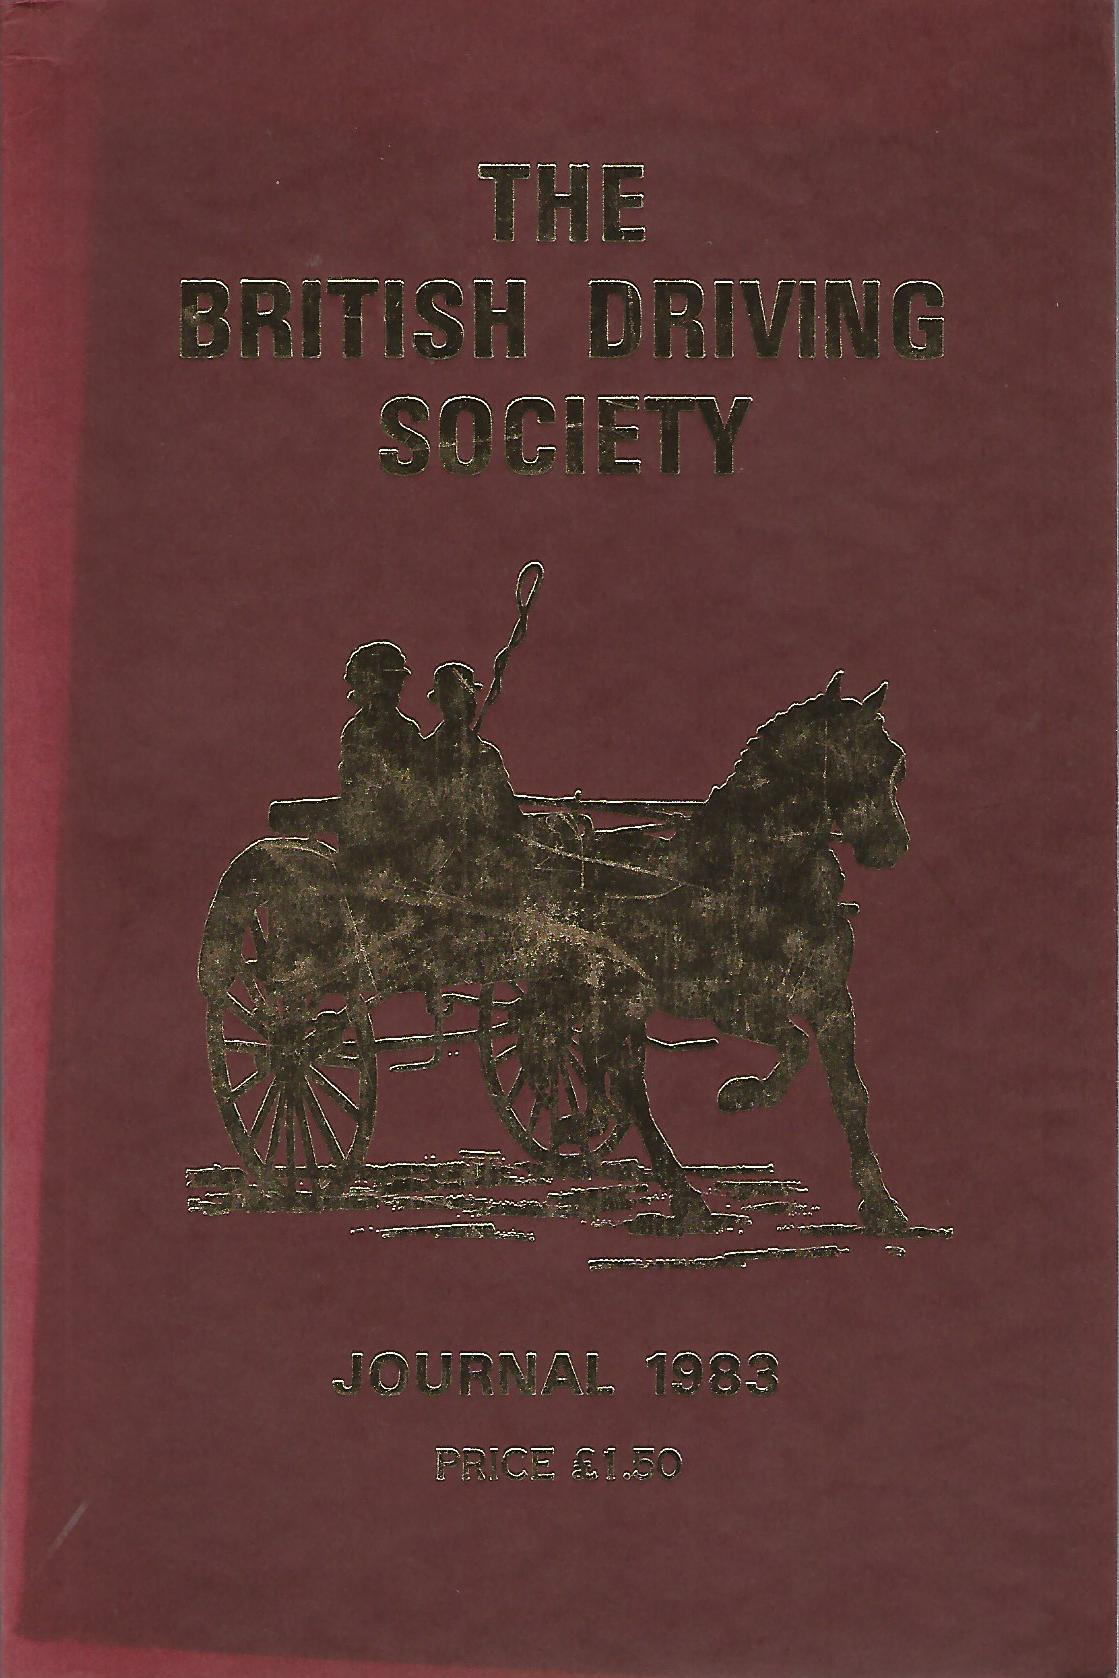 Image for The British Driving Society Journal 1983.